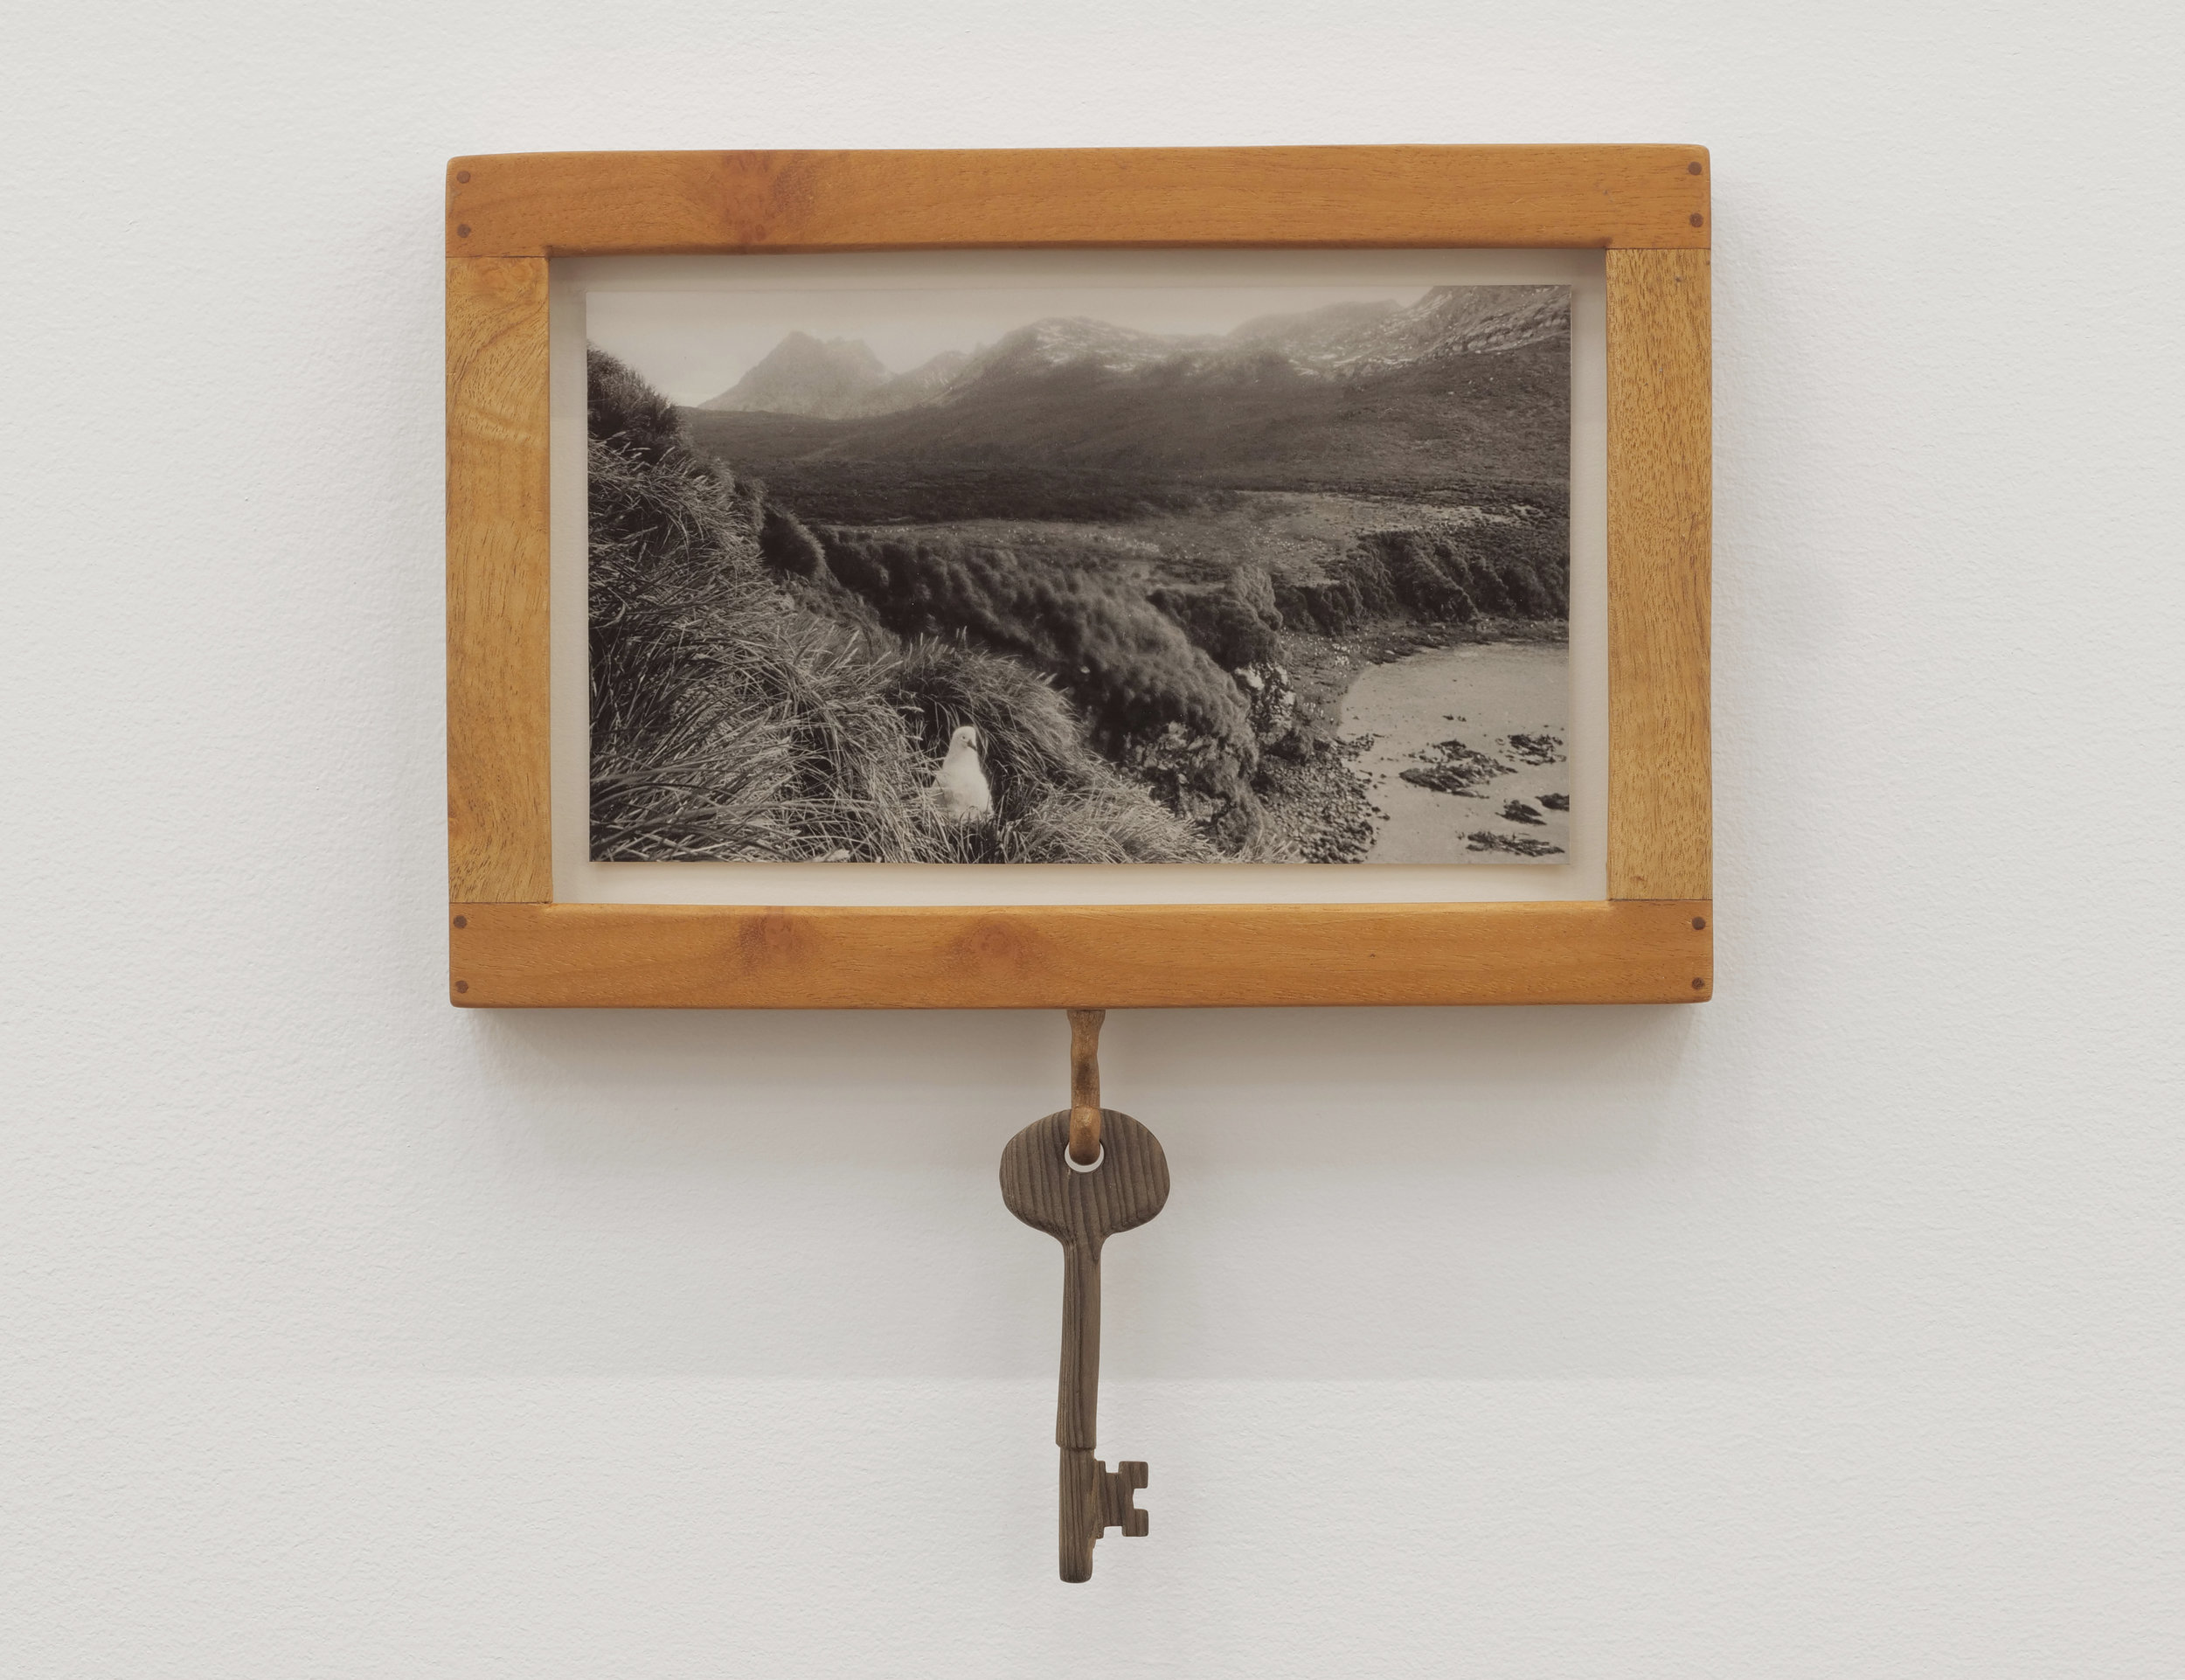 Will Rogan,  Elsahul , 2018, Gelatin silverprint, wood, 9 1/2 x 8 1/2 x 1 in